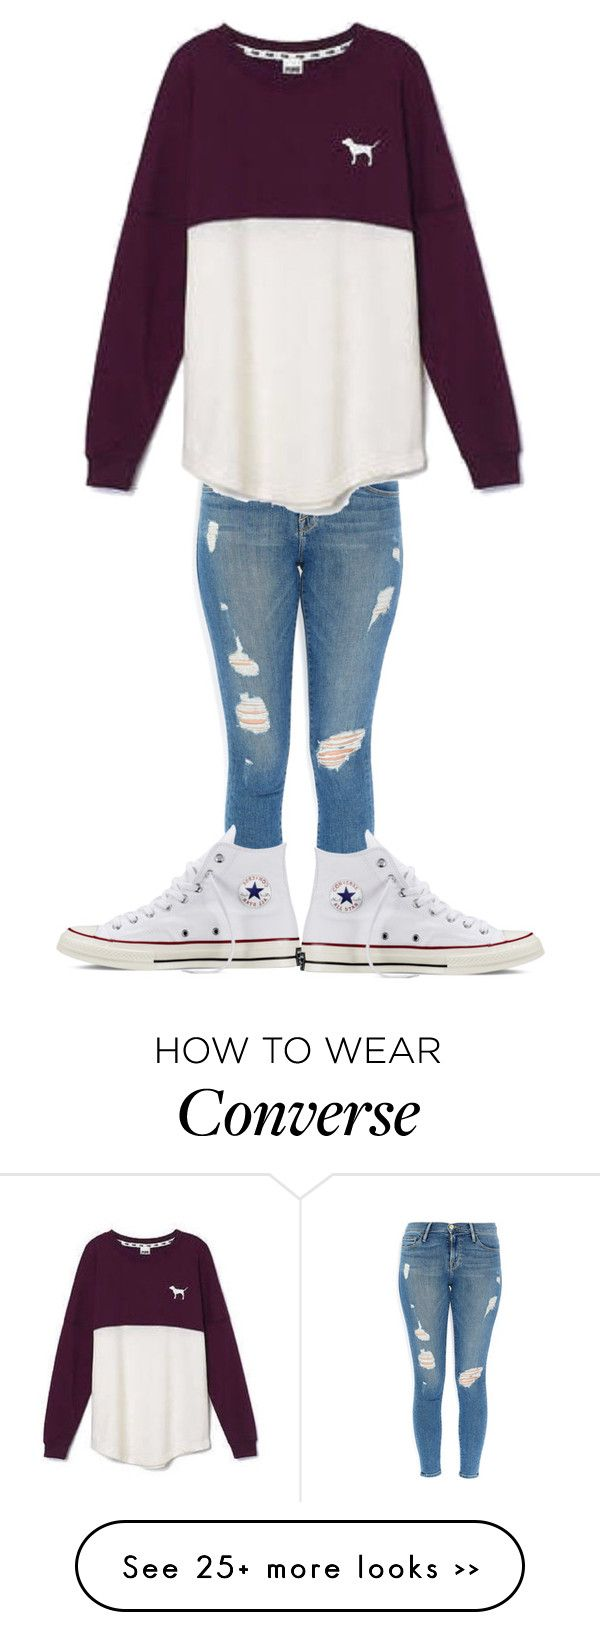 """Untitled #256"" by sonjakolecki on Polyvore featuring Frame Denim, Victoria's Secret and Converse"